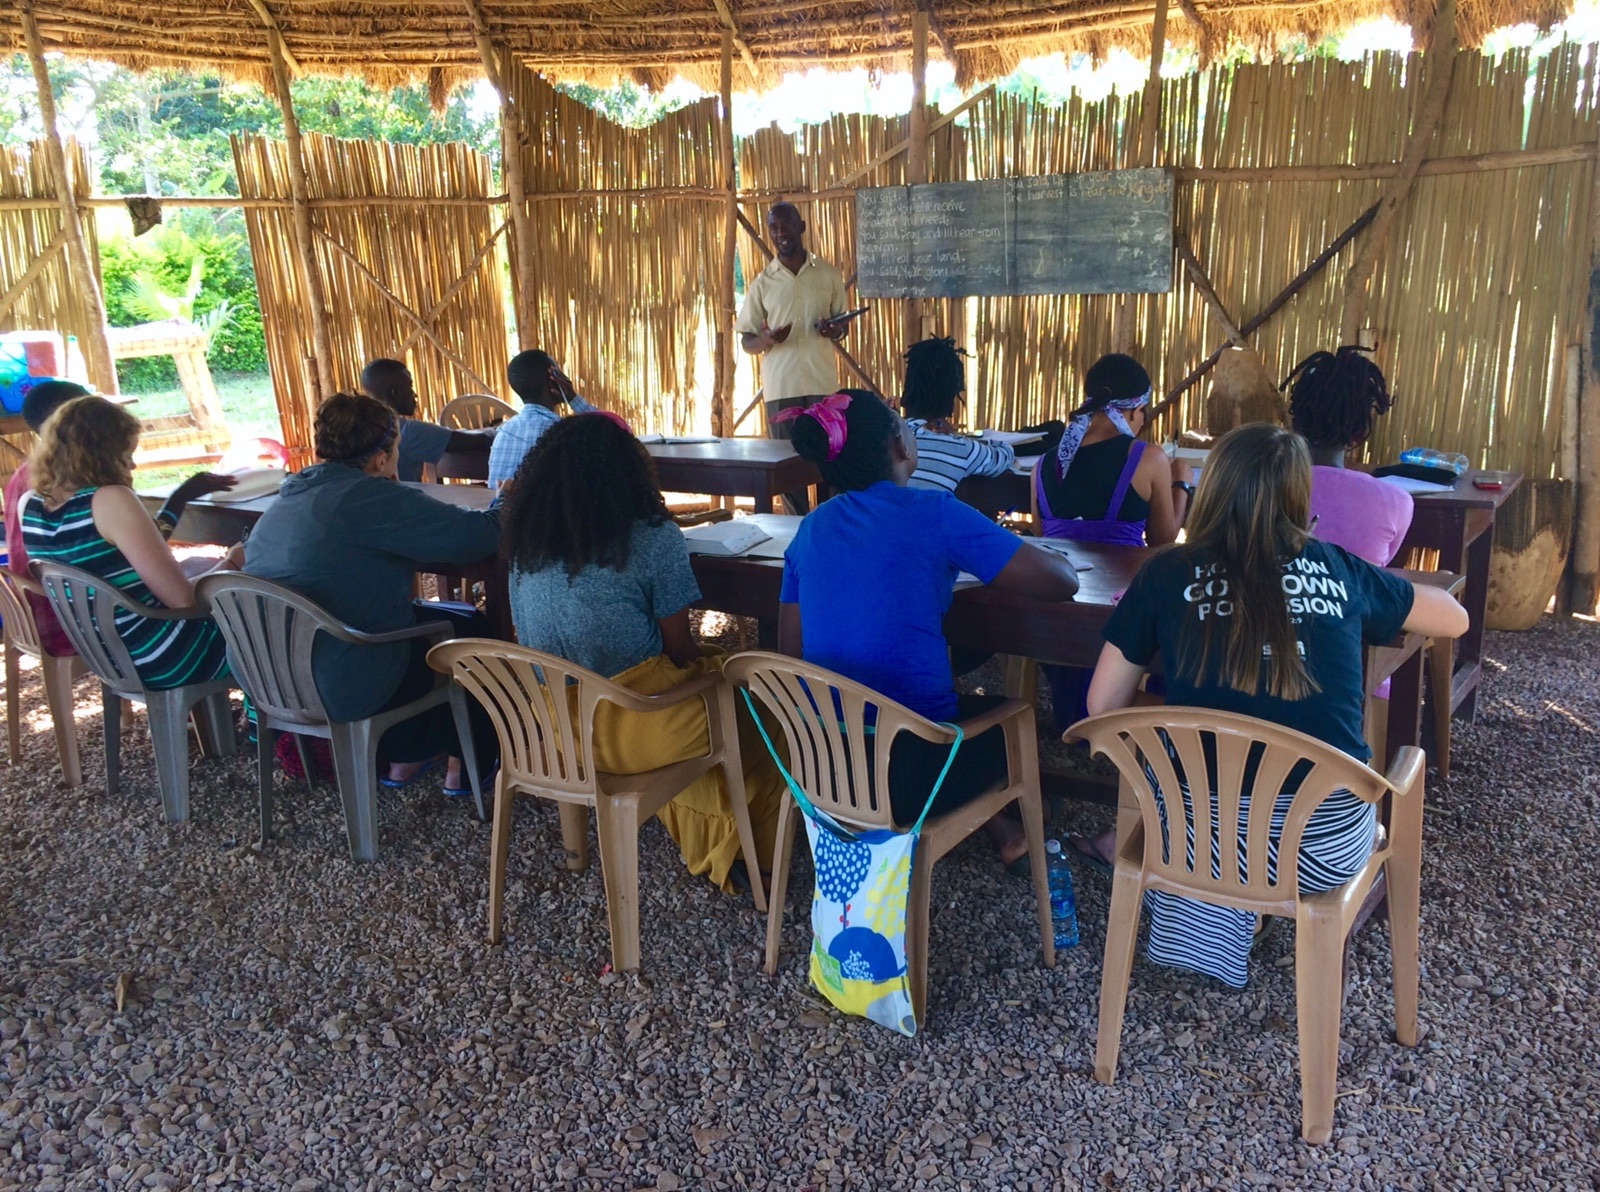 Immersion participants engage in a Bible class at the Institute EA. The students' journey parallels one another's, allowing for engaging discussions.